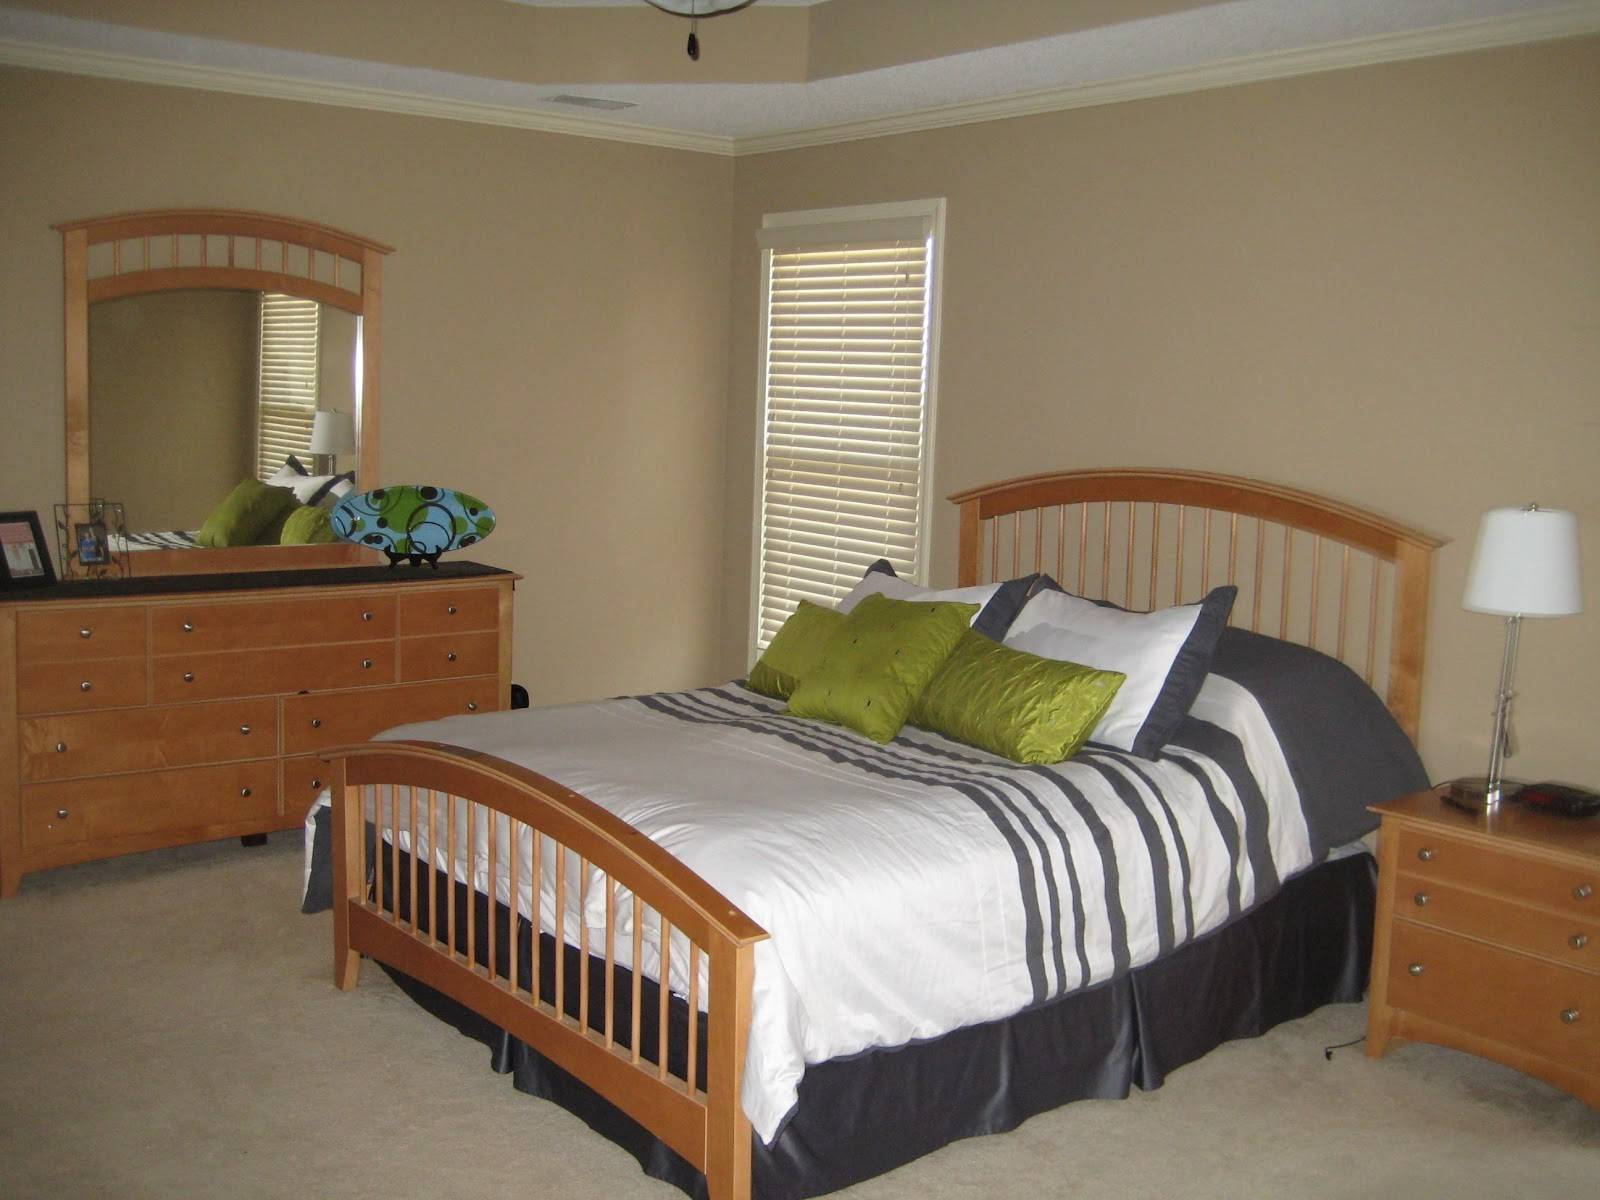 appealing bedroom design | Bedroom Appealing Arrangement Ideas Small - Designs Chaos